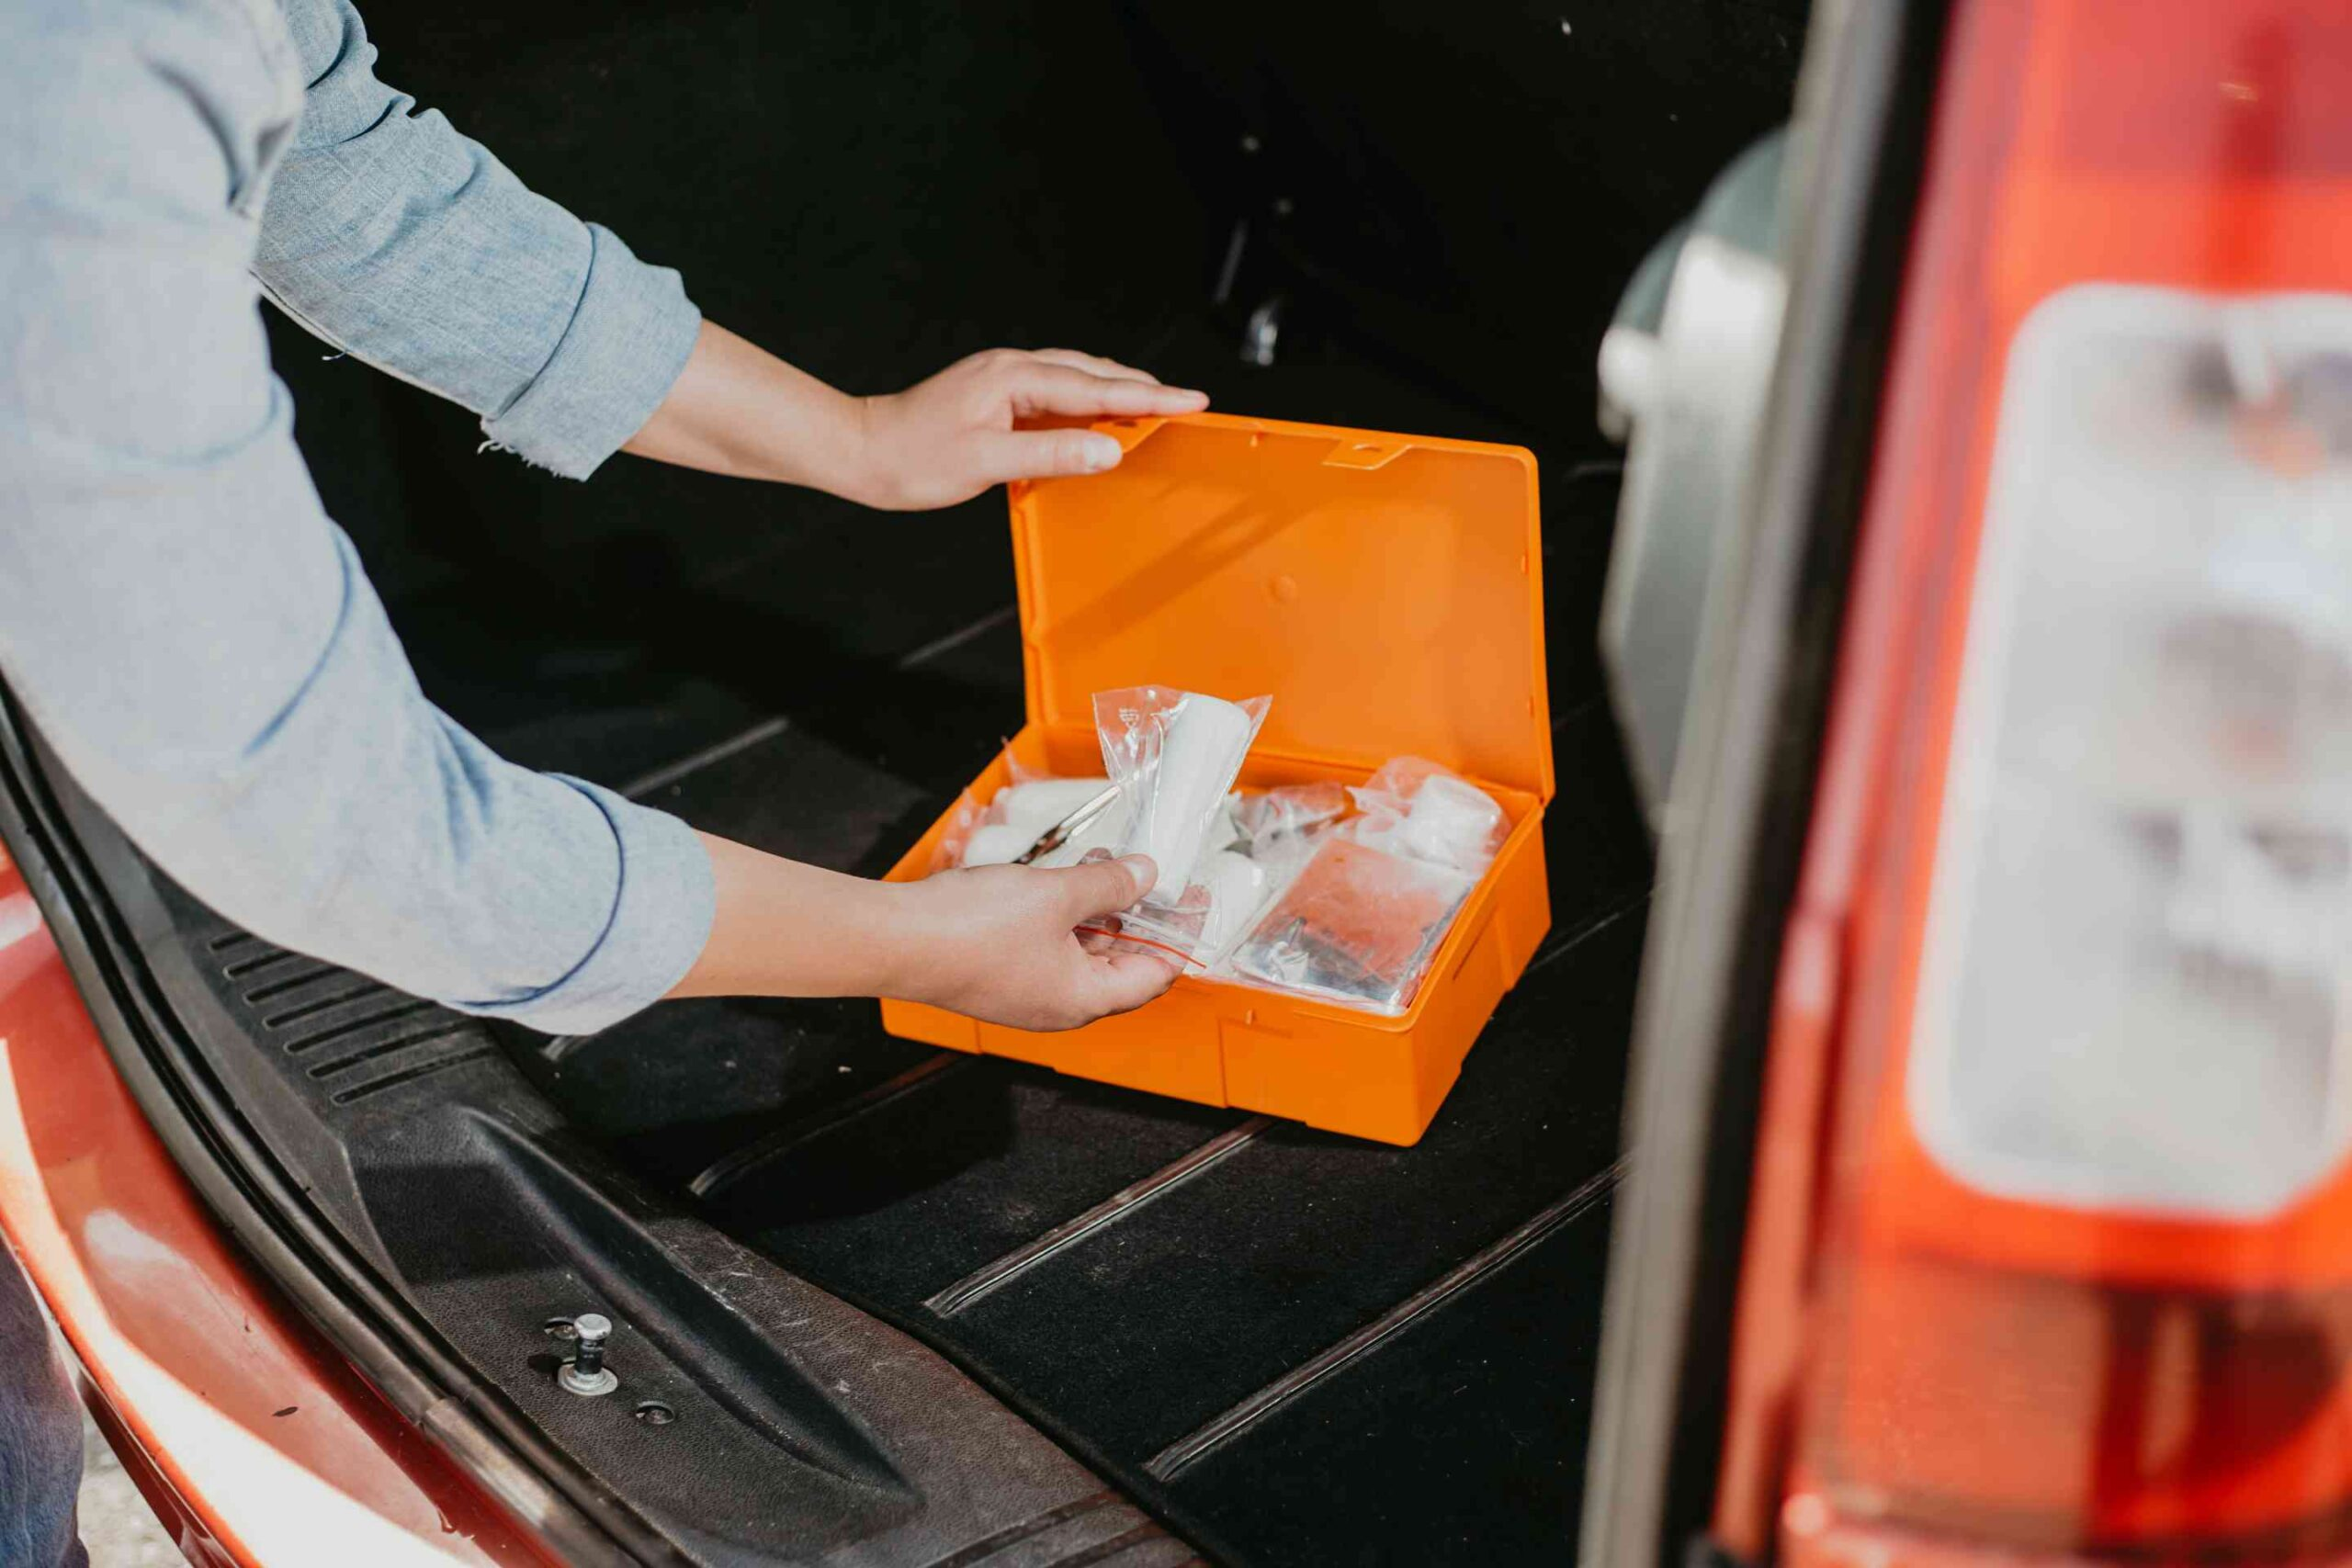 Medical First Aid Kit in Car